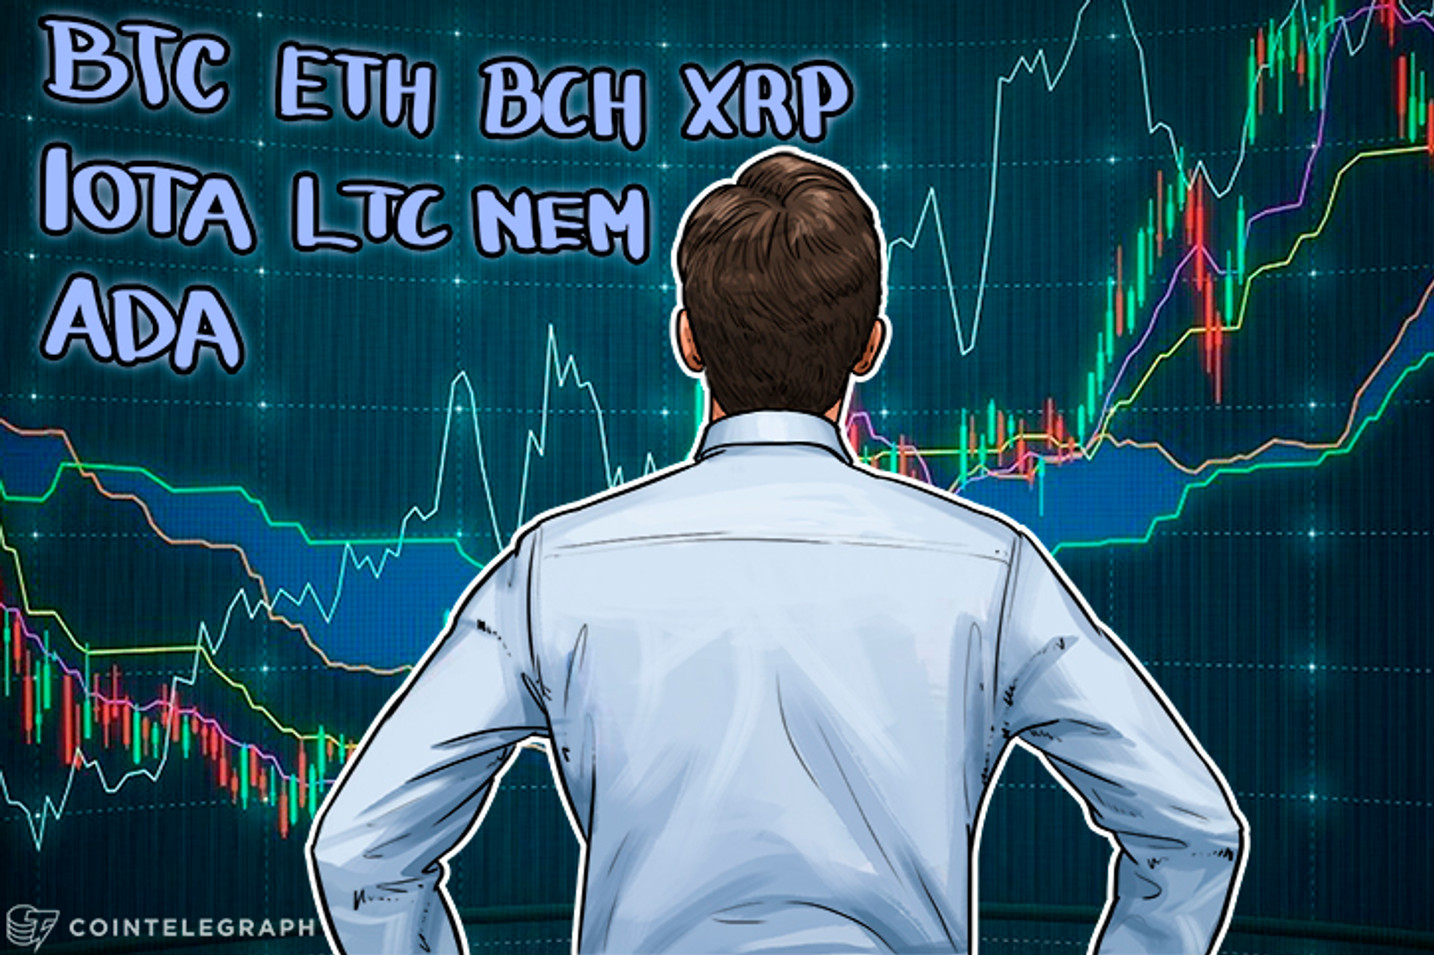 Bitcoin, Ethereum, Bitcoin Cash, Ripple, IOTA, Litecoin, NEM, Cardano: Price Analysis, Jan. 12